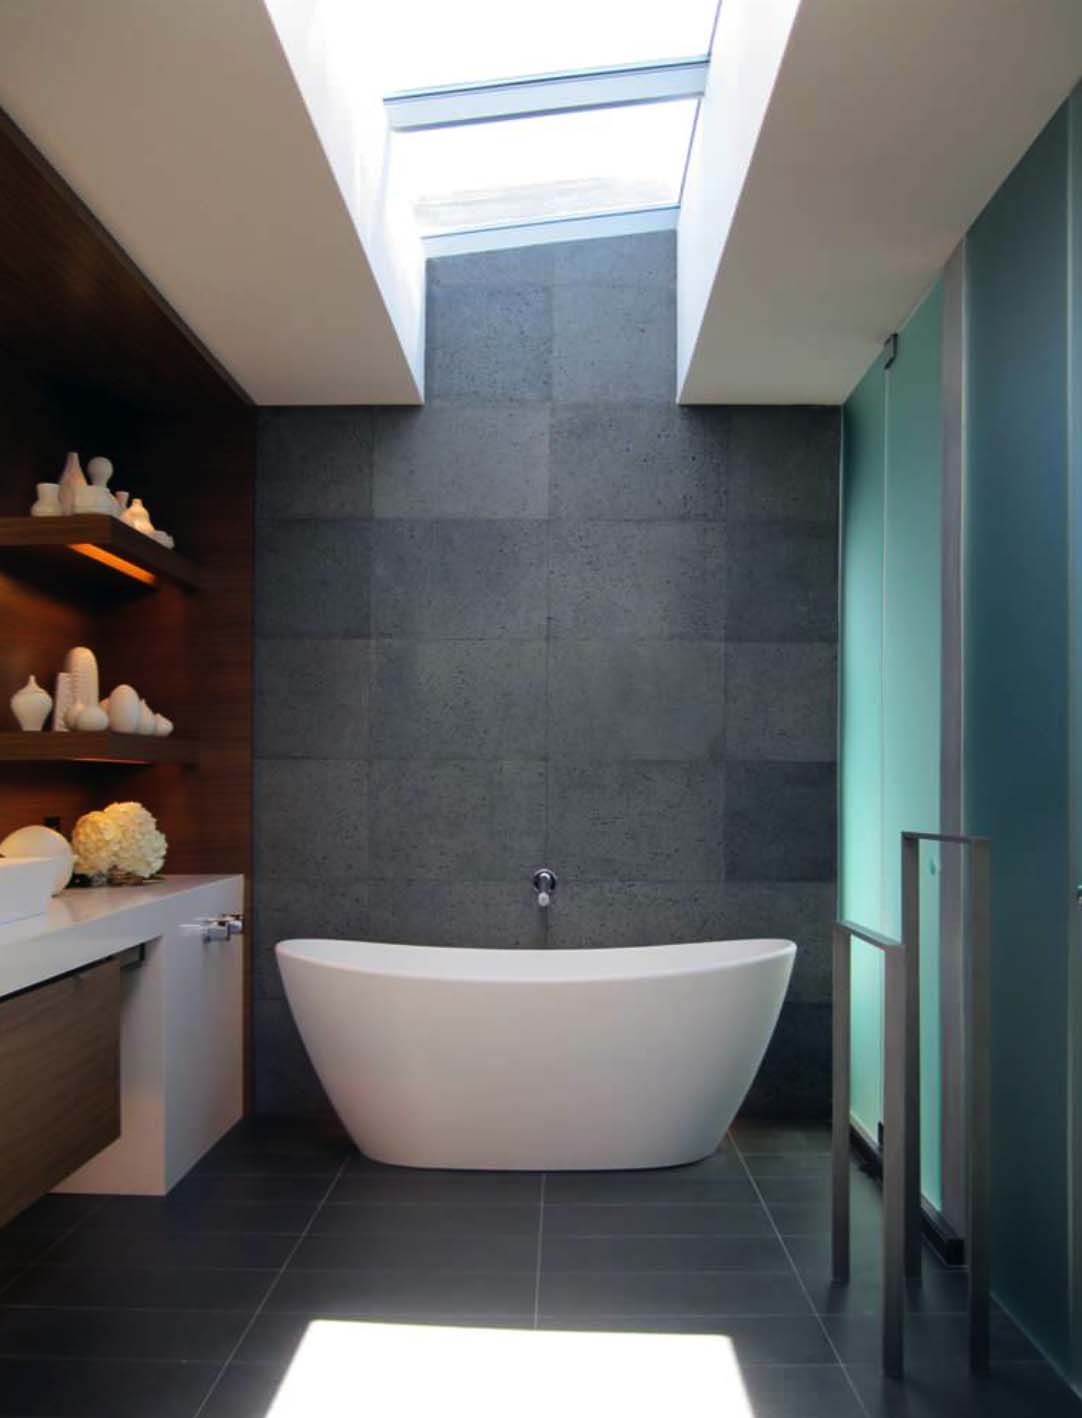 Freestanding Tubs Bathroom Ideas 05 1 Kindesign